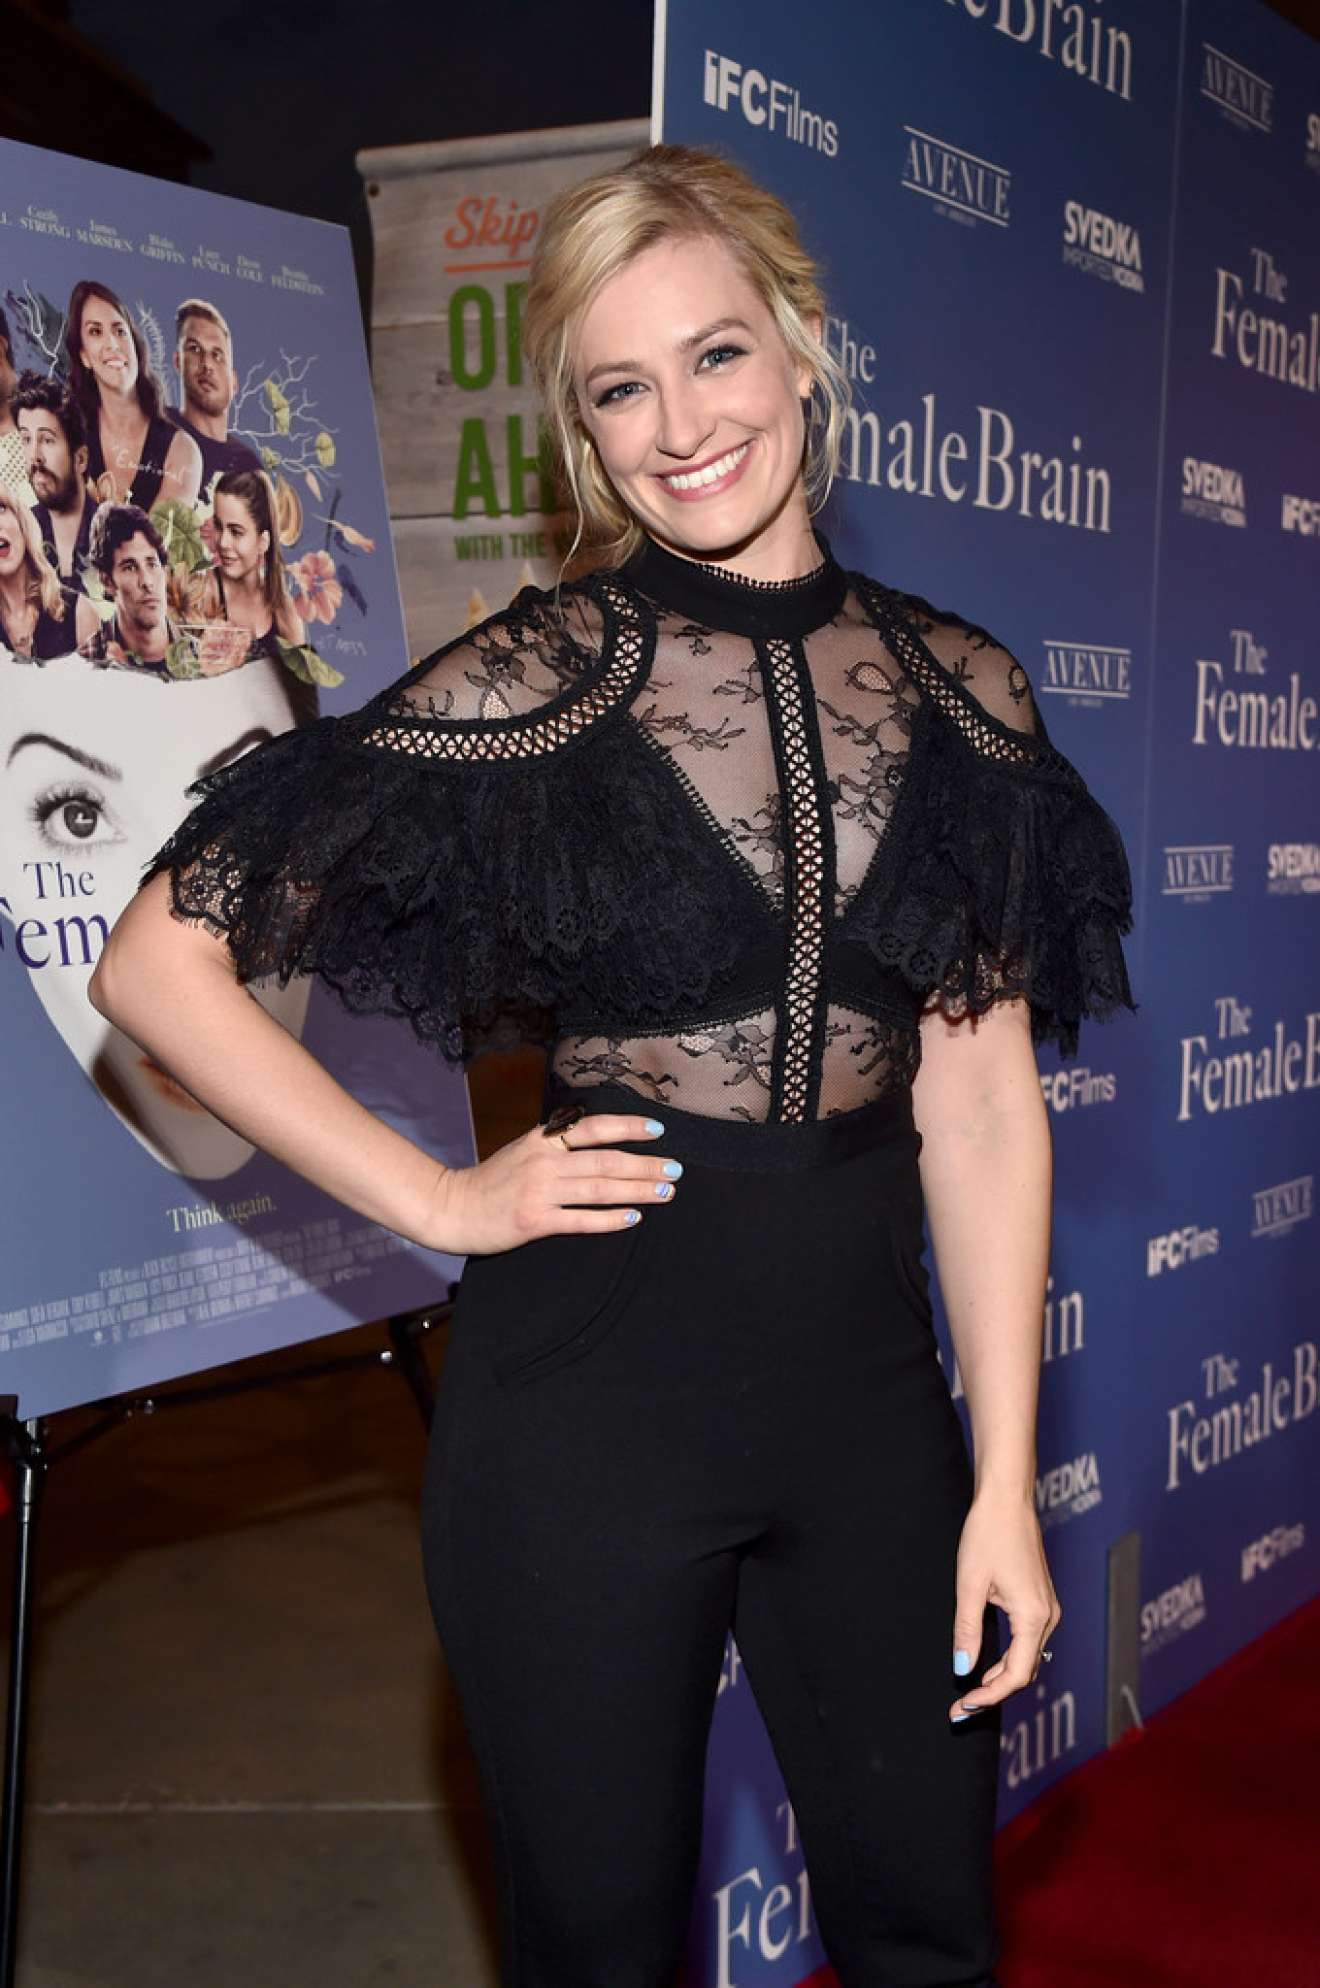 beth behrs the female brain premiere in hollywood gotceleb